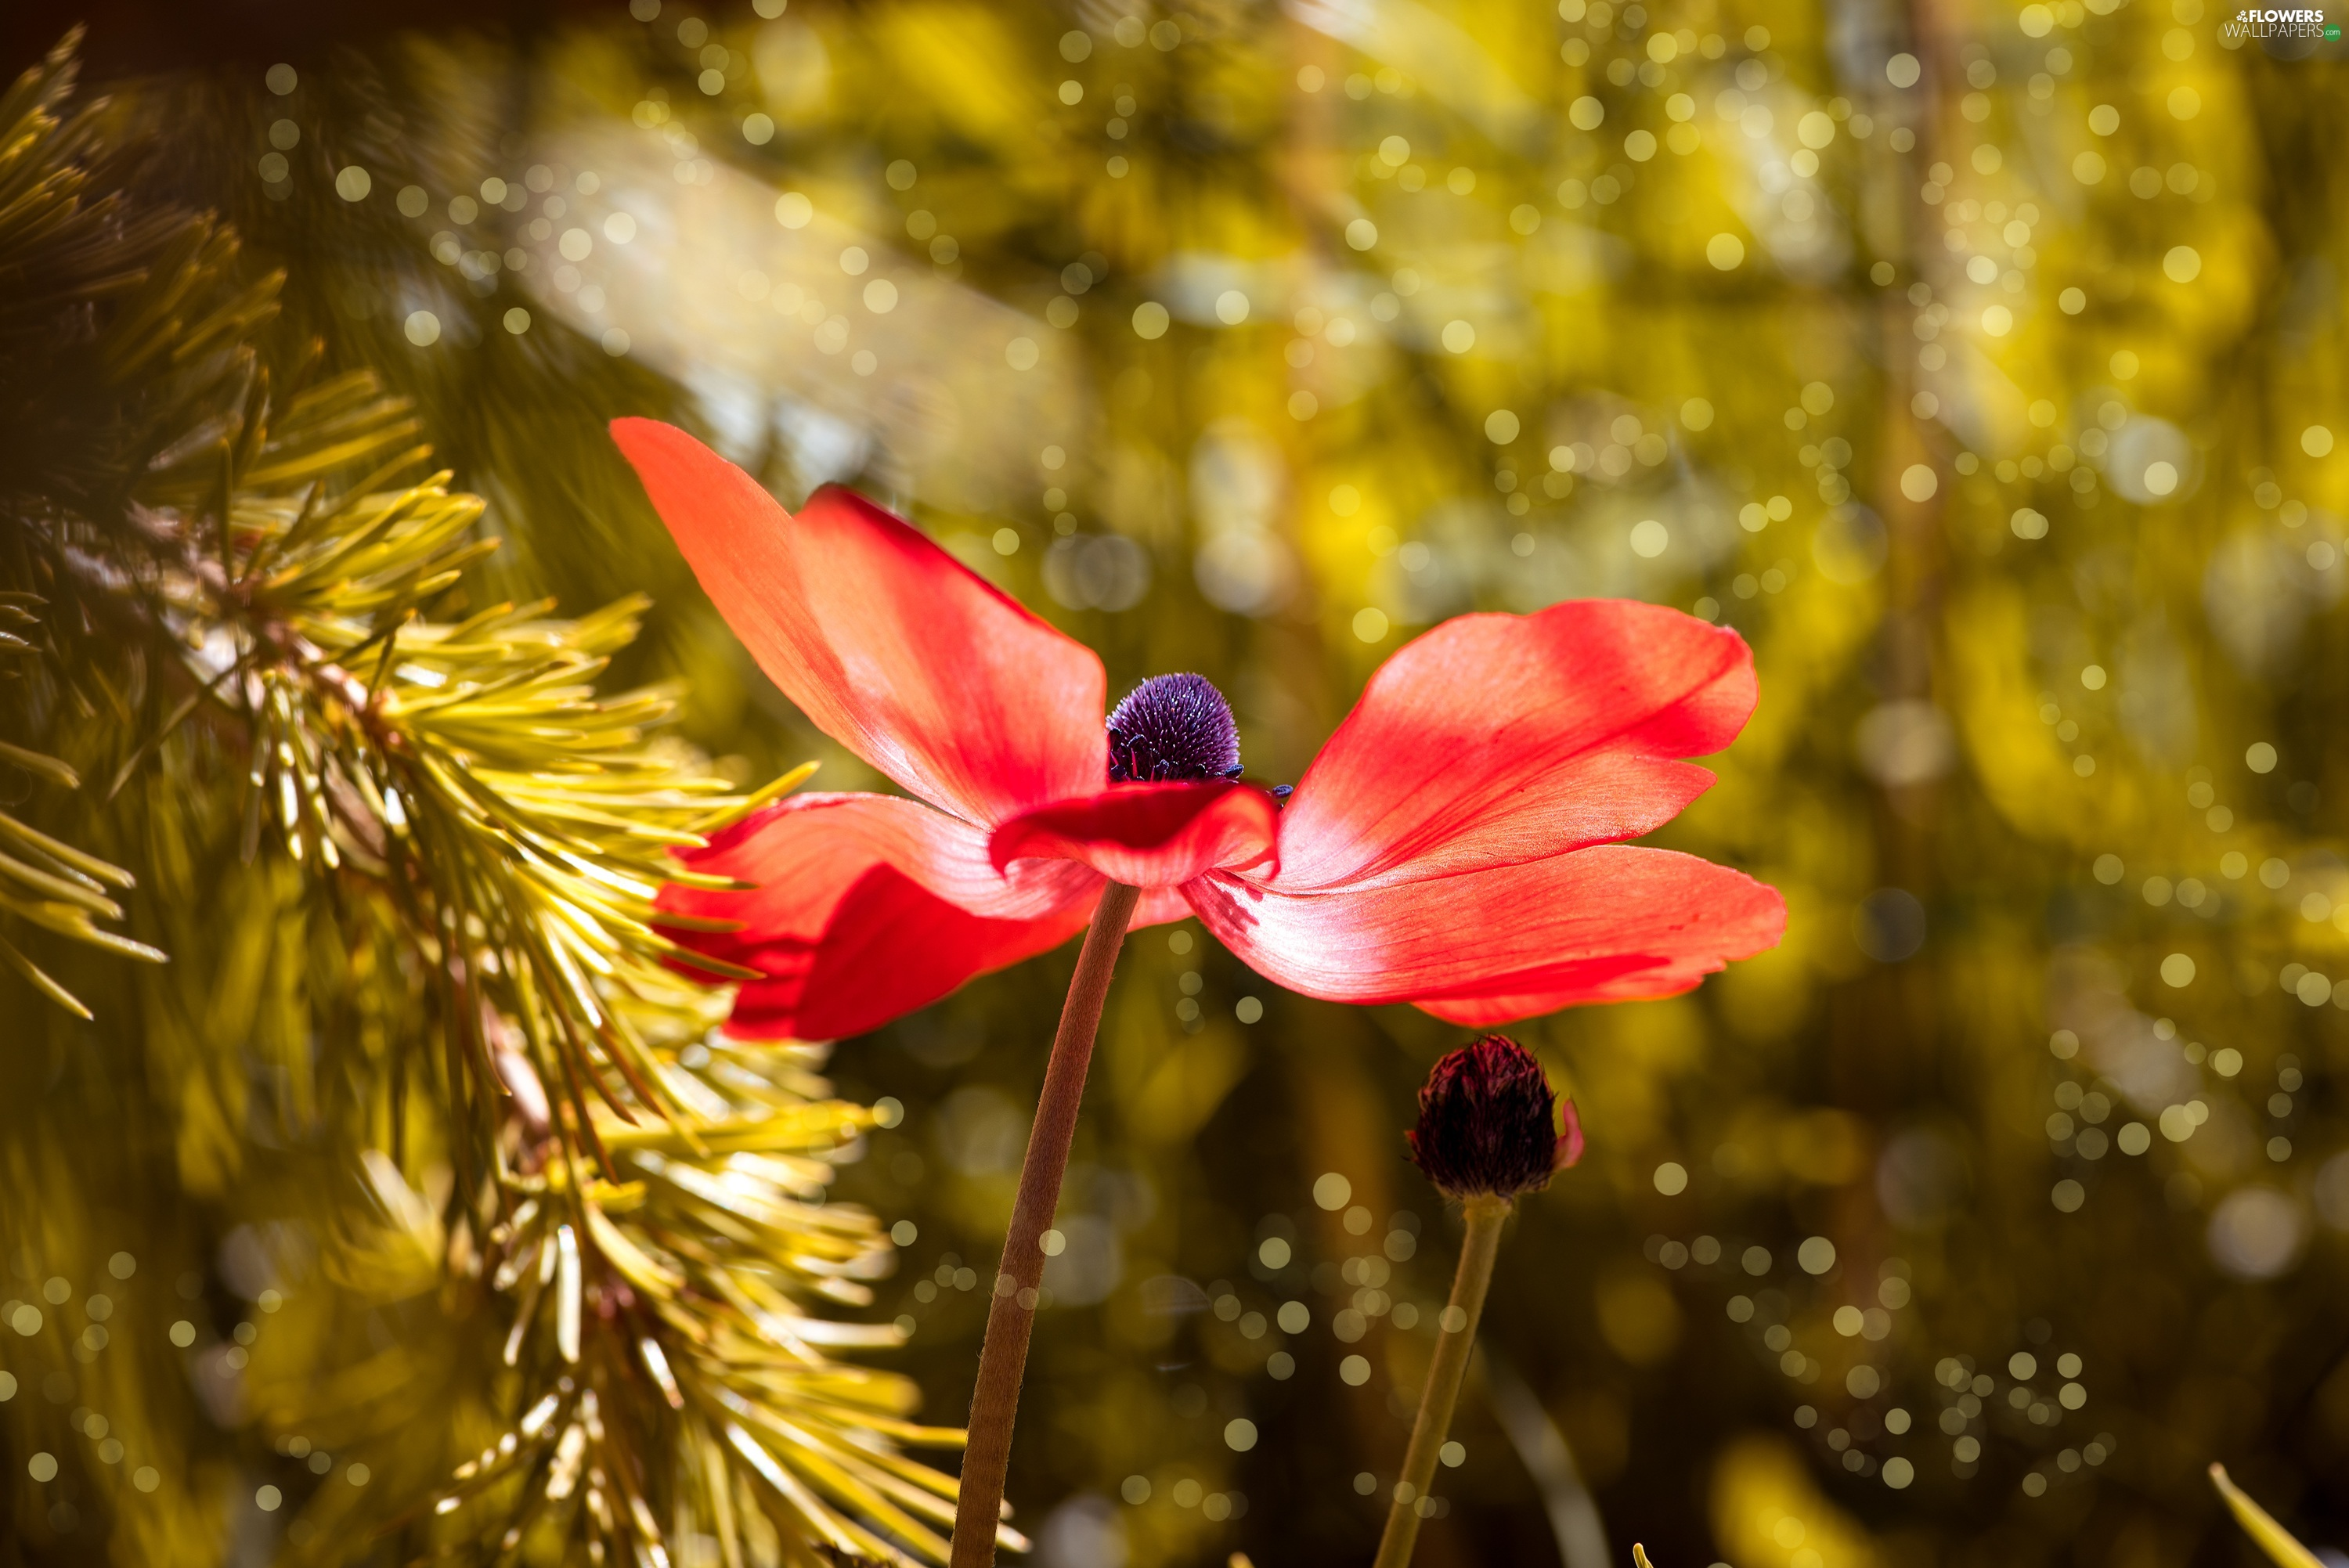 sun, twig, flash, ligh, Colourfull Flowers, Red, luminosity, anemone